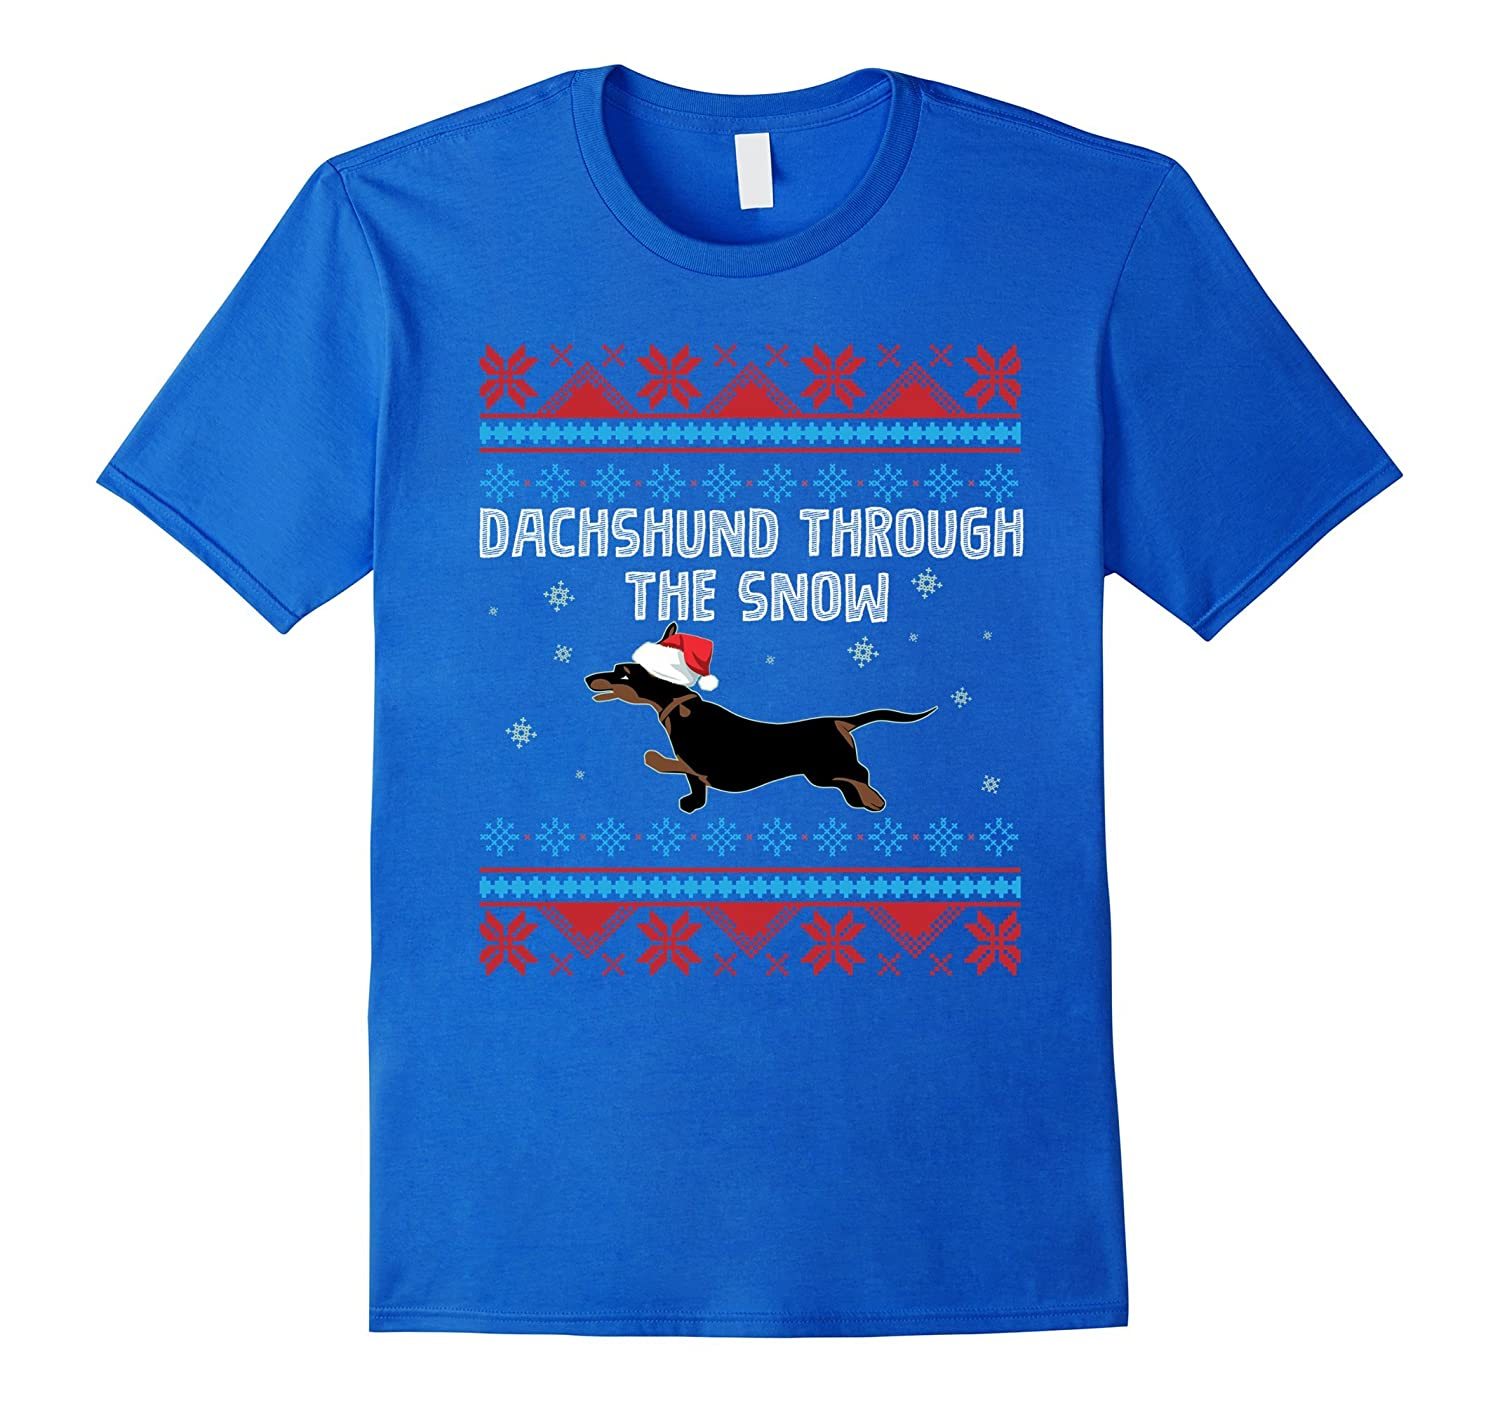 Dachshund Through the Snow T-Shirt Funny Ugly Sweater Gift-FL